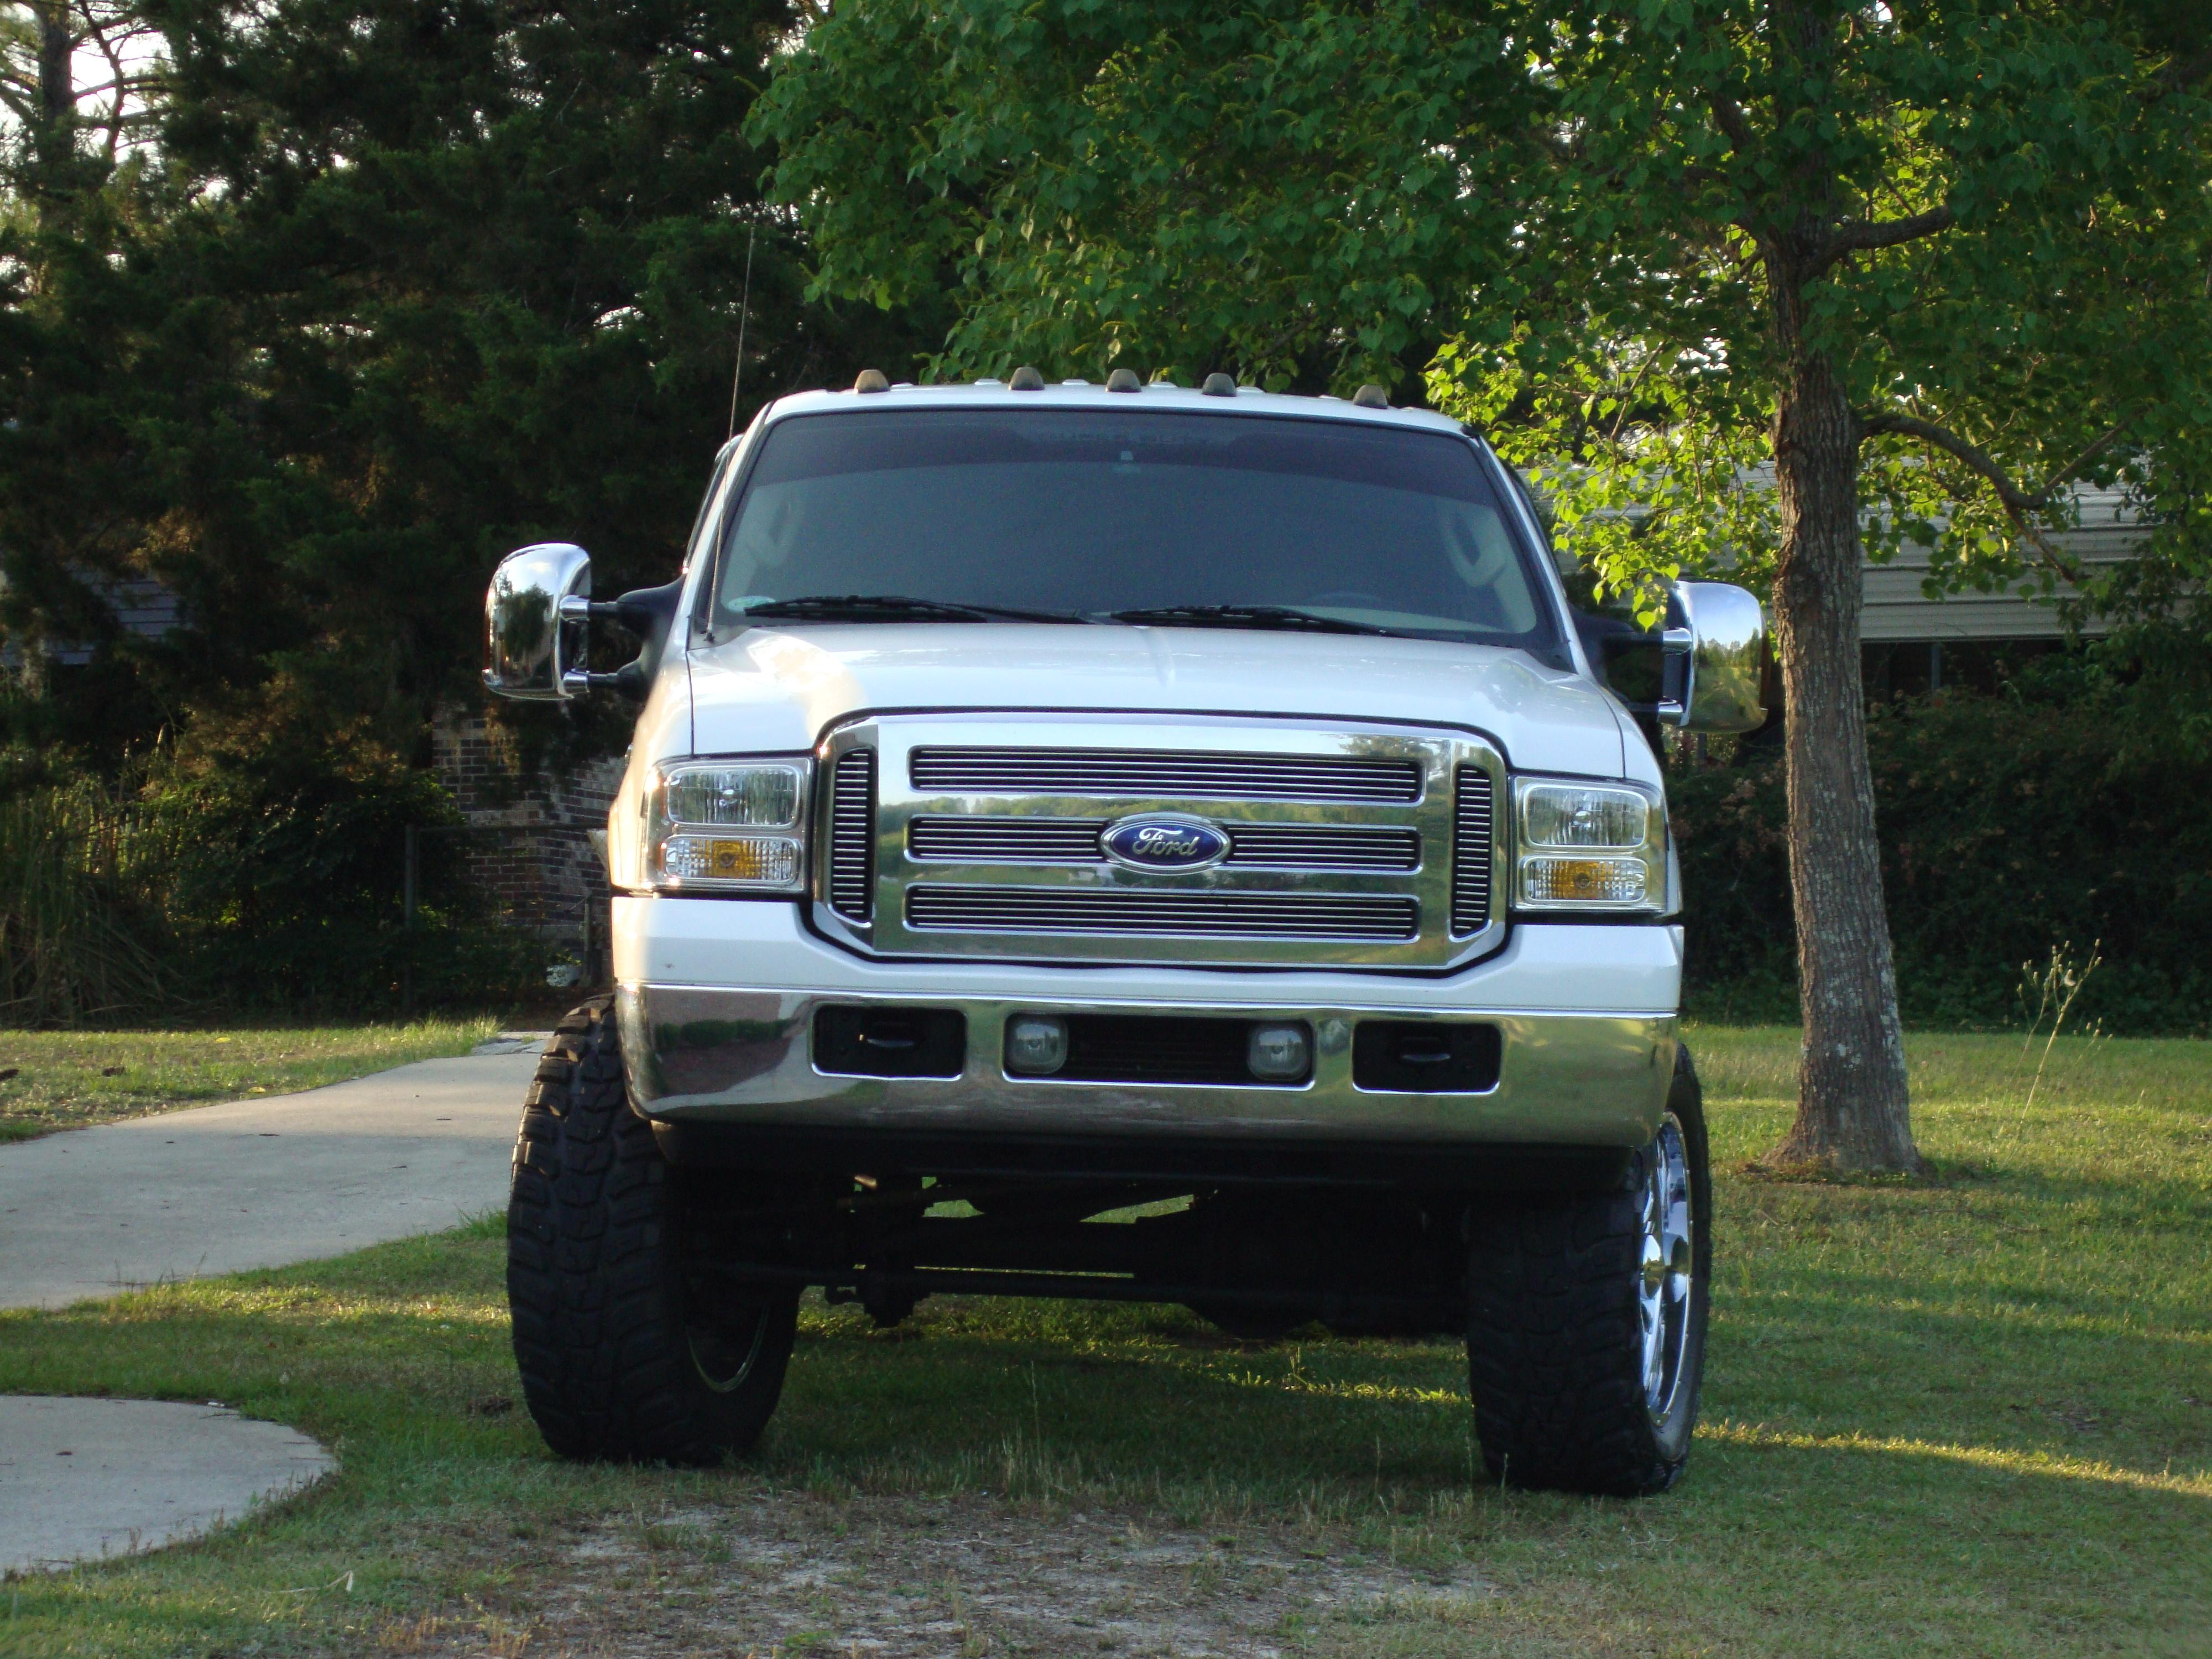 Diesel08's 2006 Ford F250 Super Duty Crew Cab